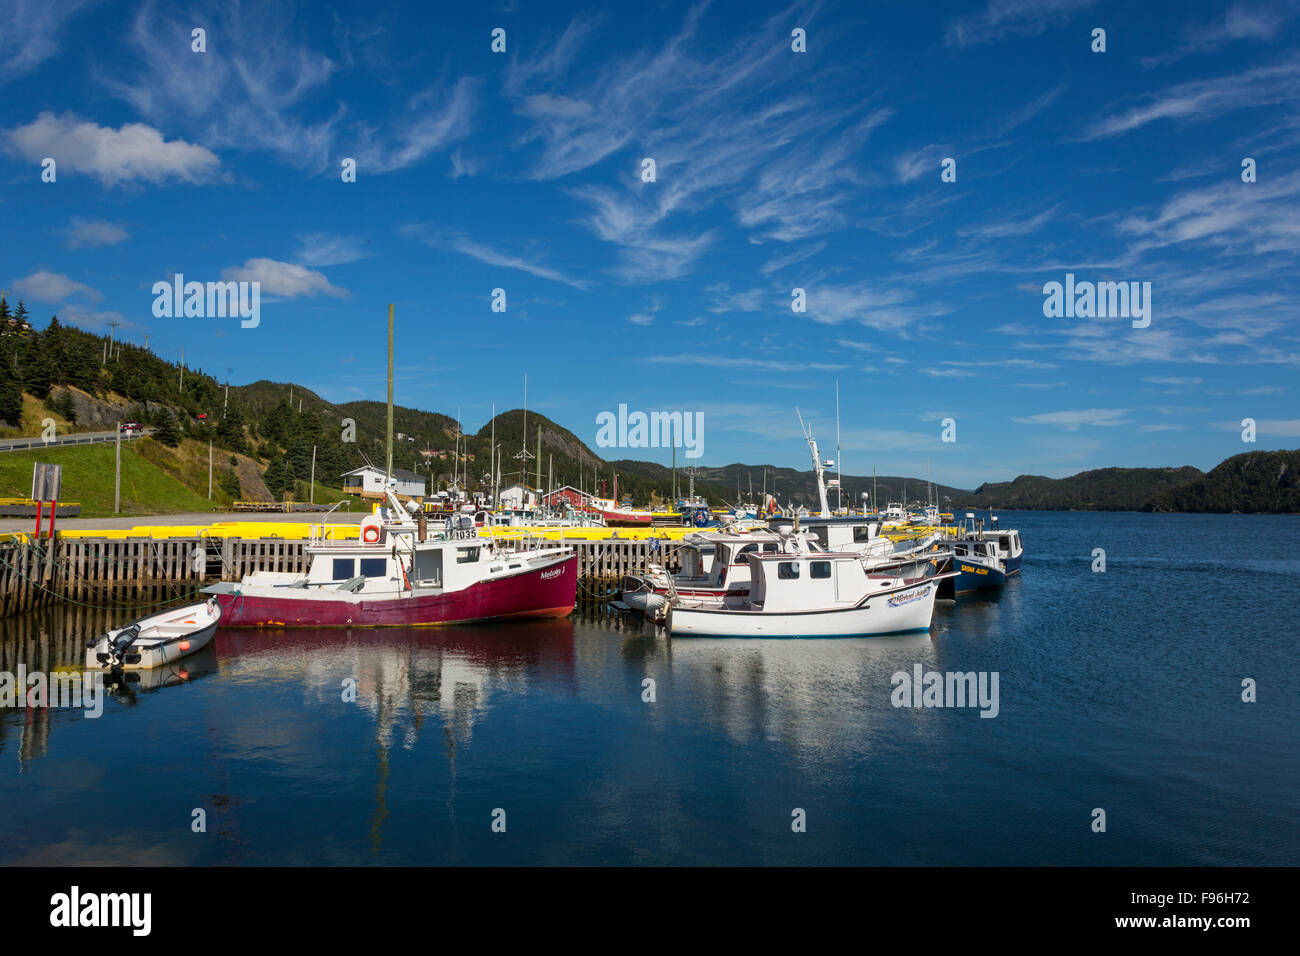 Fishing boats tied up at wharf, St. Bride's Harbour, Newfoundland, Canada - Stock Image